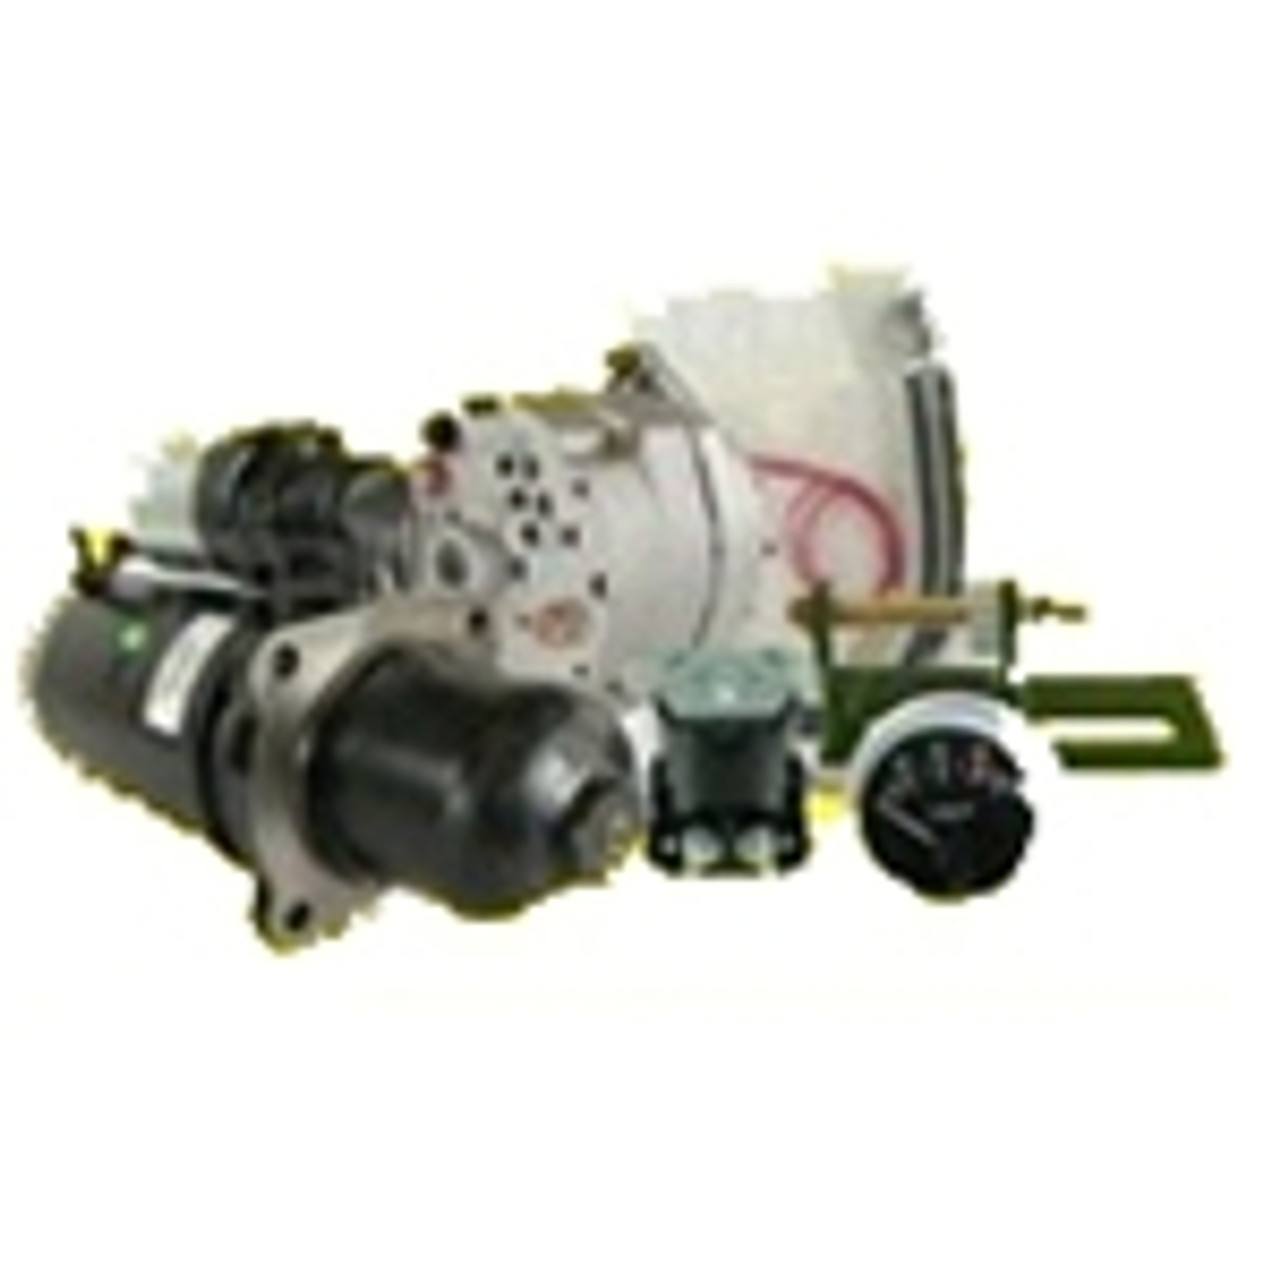 Generator Conversion Kits